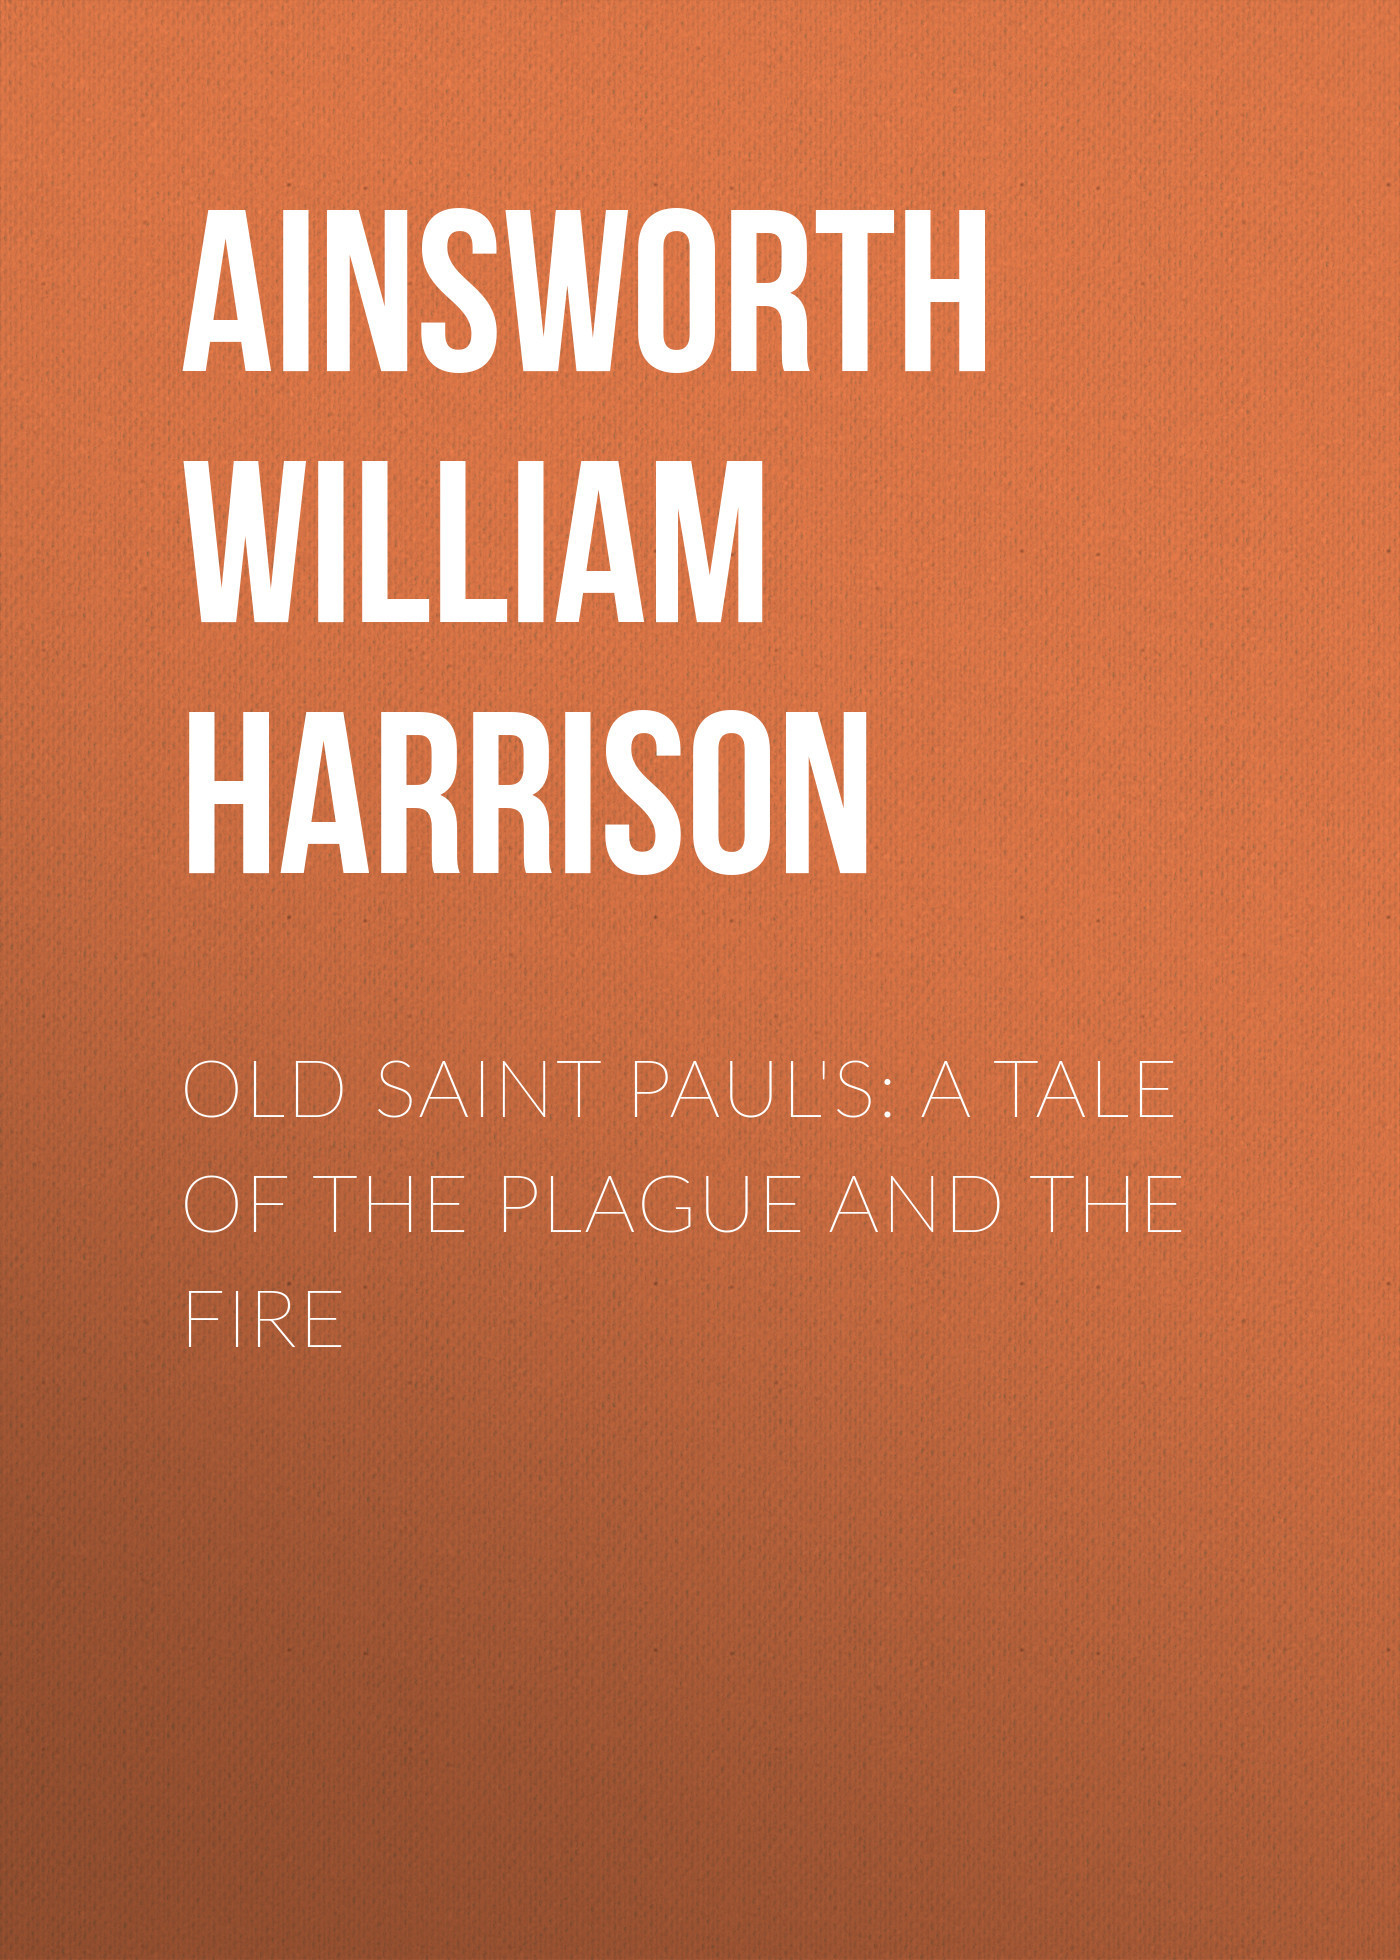 Ainsworth William Harrison Old Saint Paul's: A Tale of the Plague and the Fire coco vision rotating pu leather case cover for kindle fire hd 7 inch 2012 old model